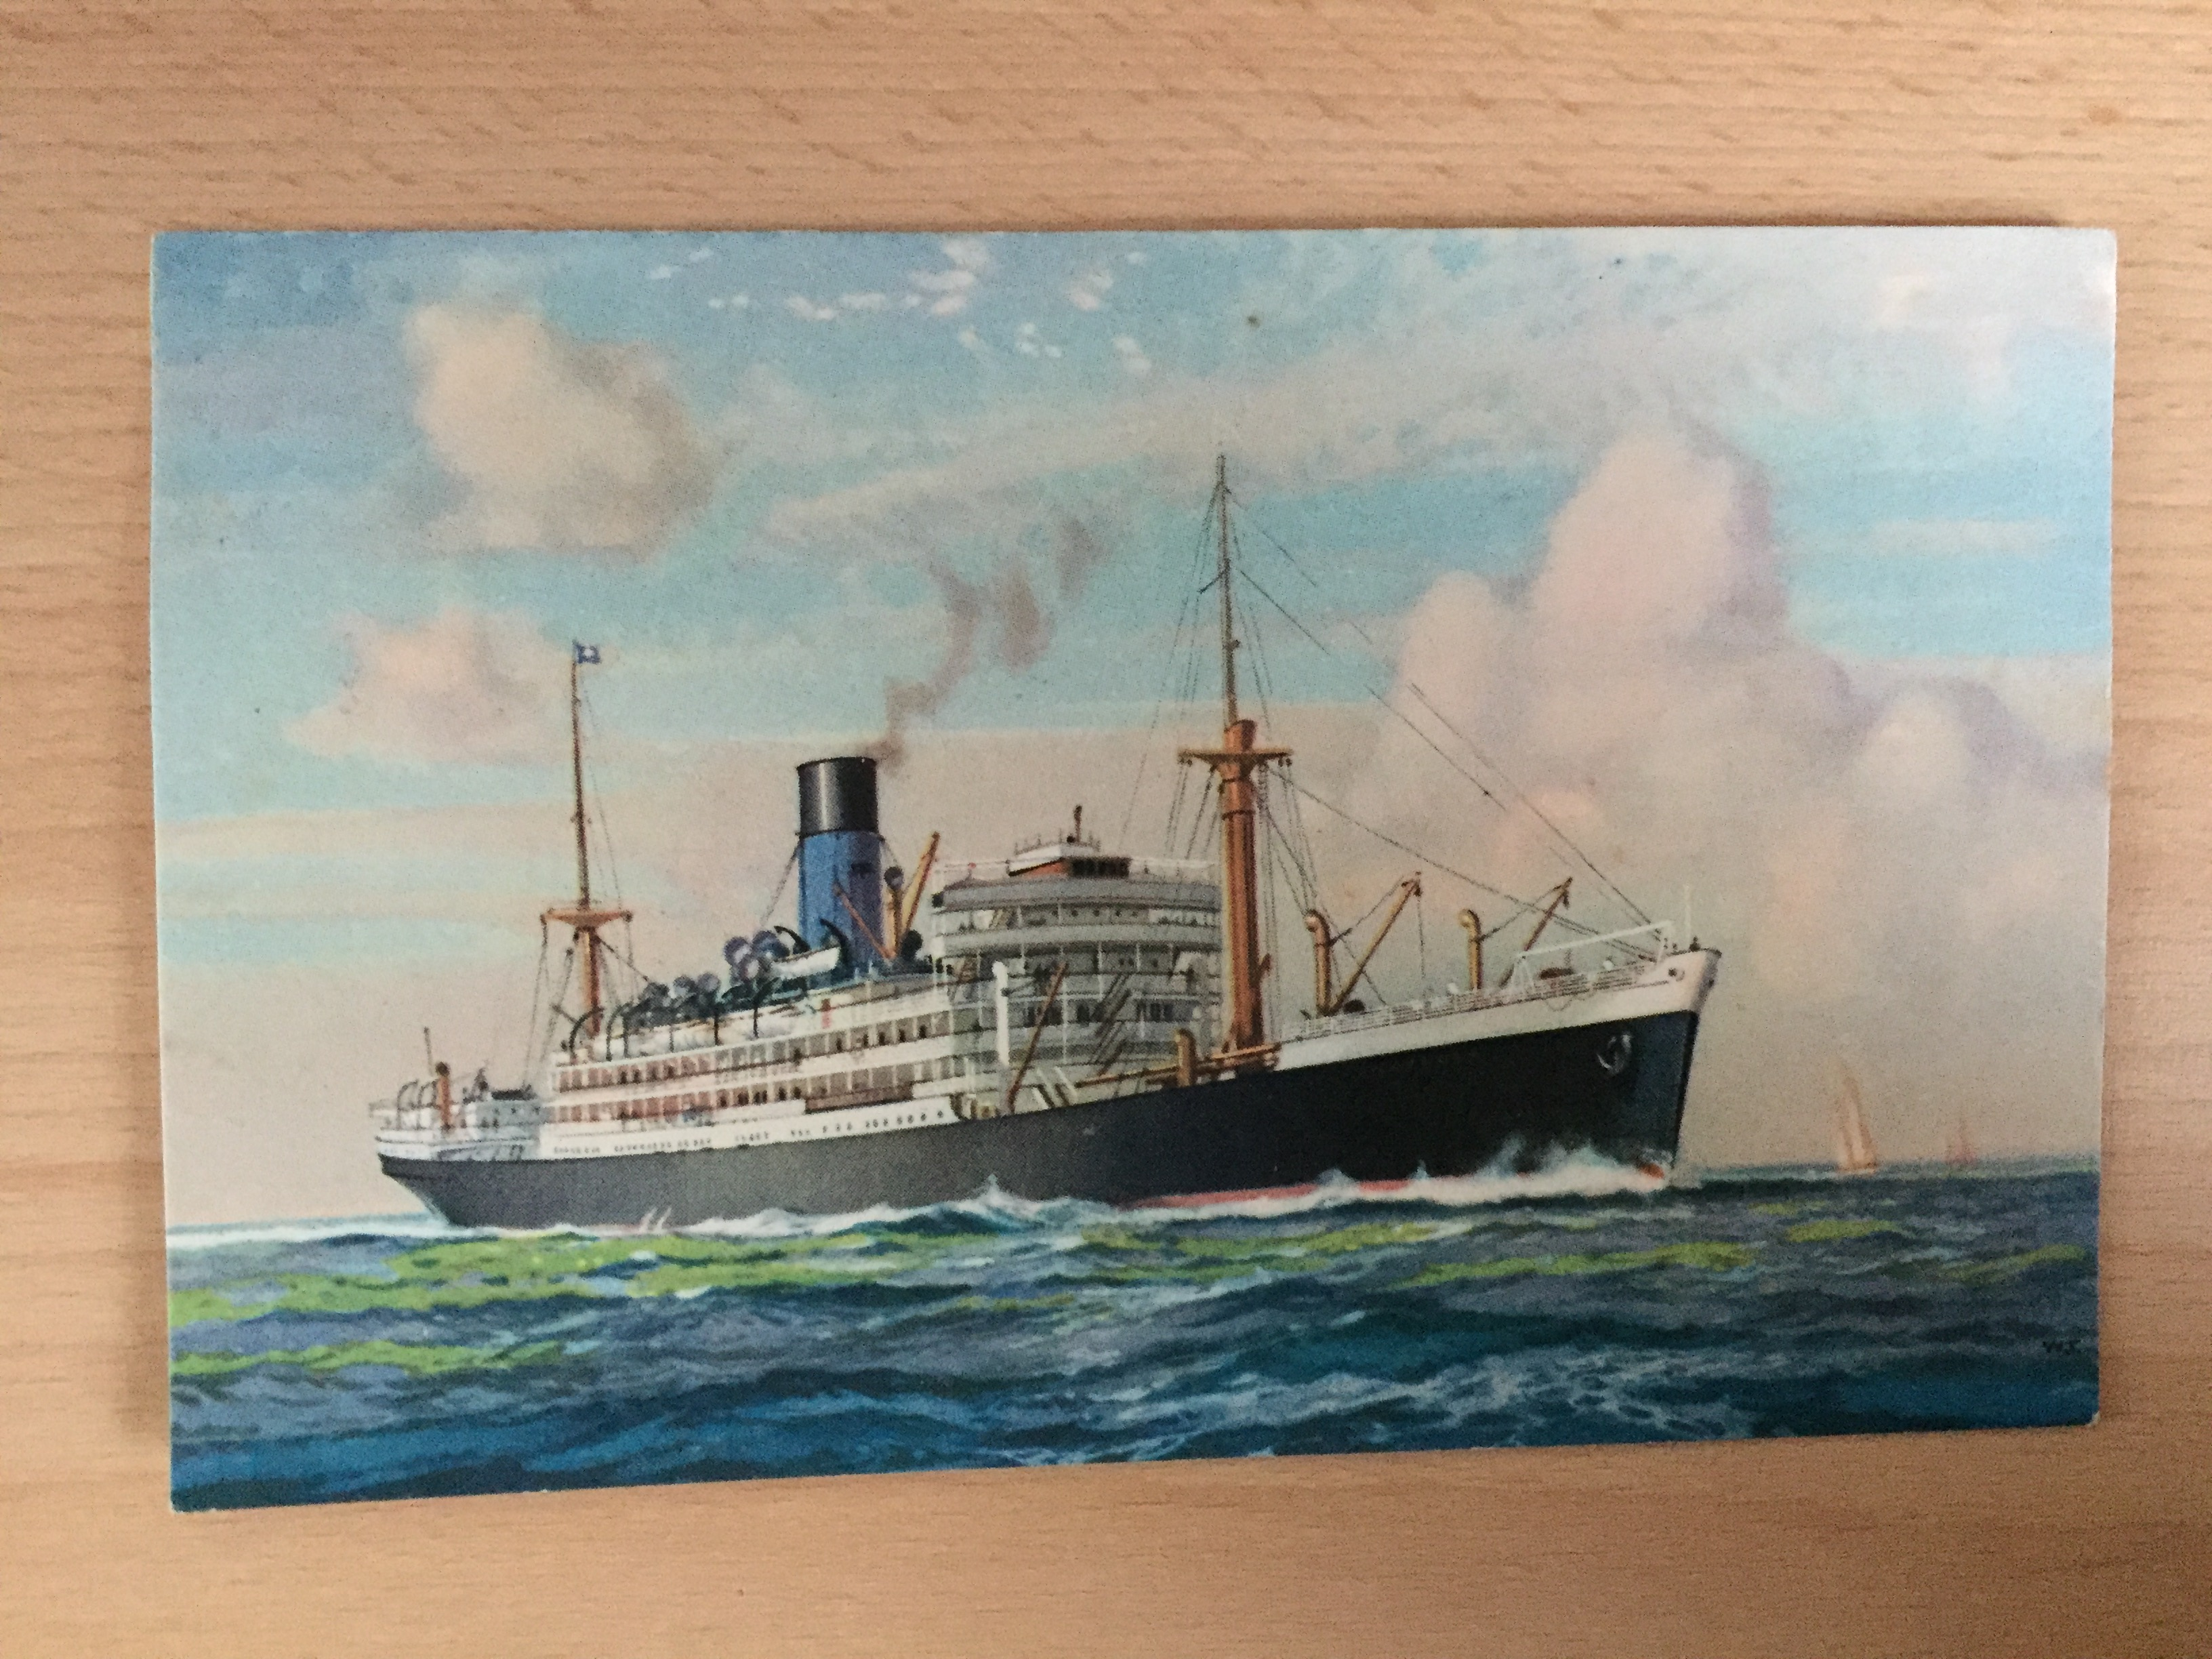 VERY EARLY COLOUR POSTCARD FROM THE BLUE FUNNEL LINE VESSEL THE ANTENOR